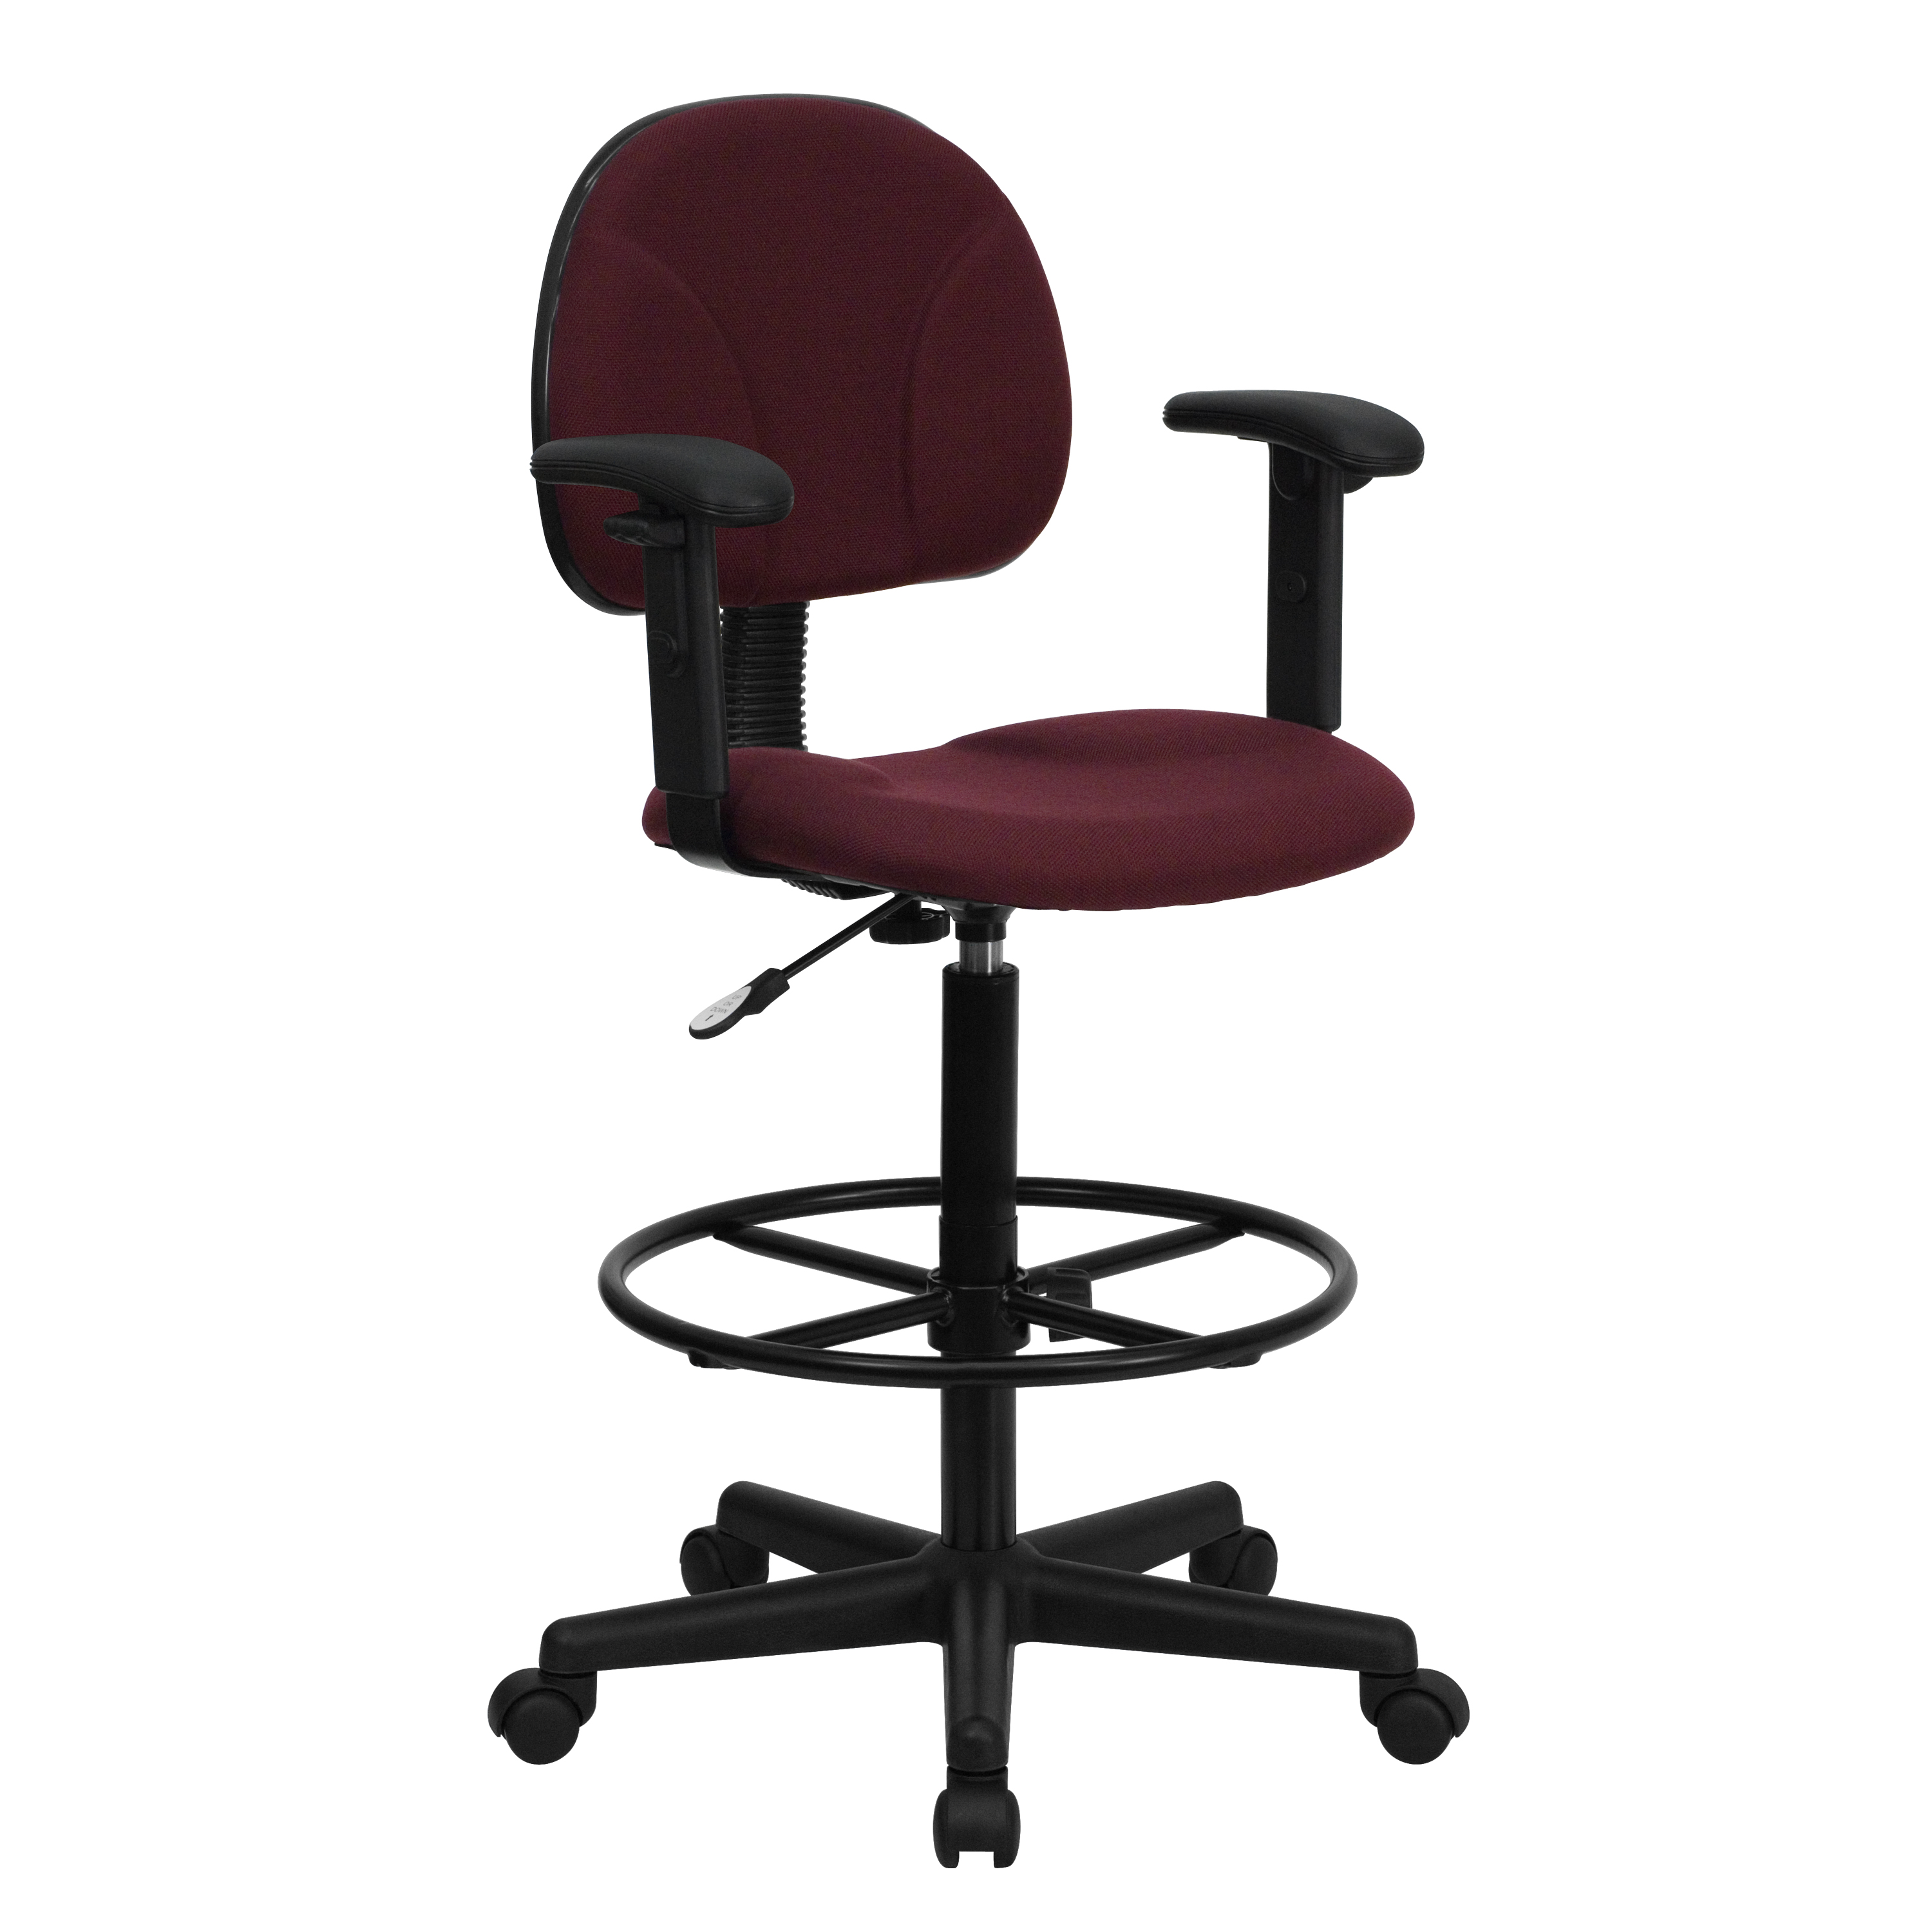 Flash Burgundy Fabric Multi Functional Ergonomic Drafting Stool With Arms By